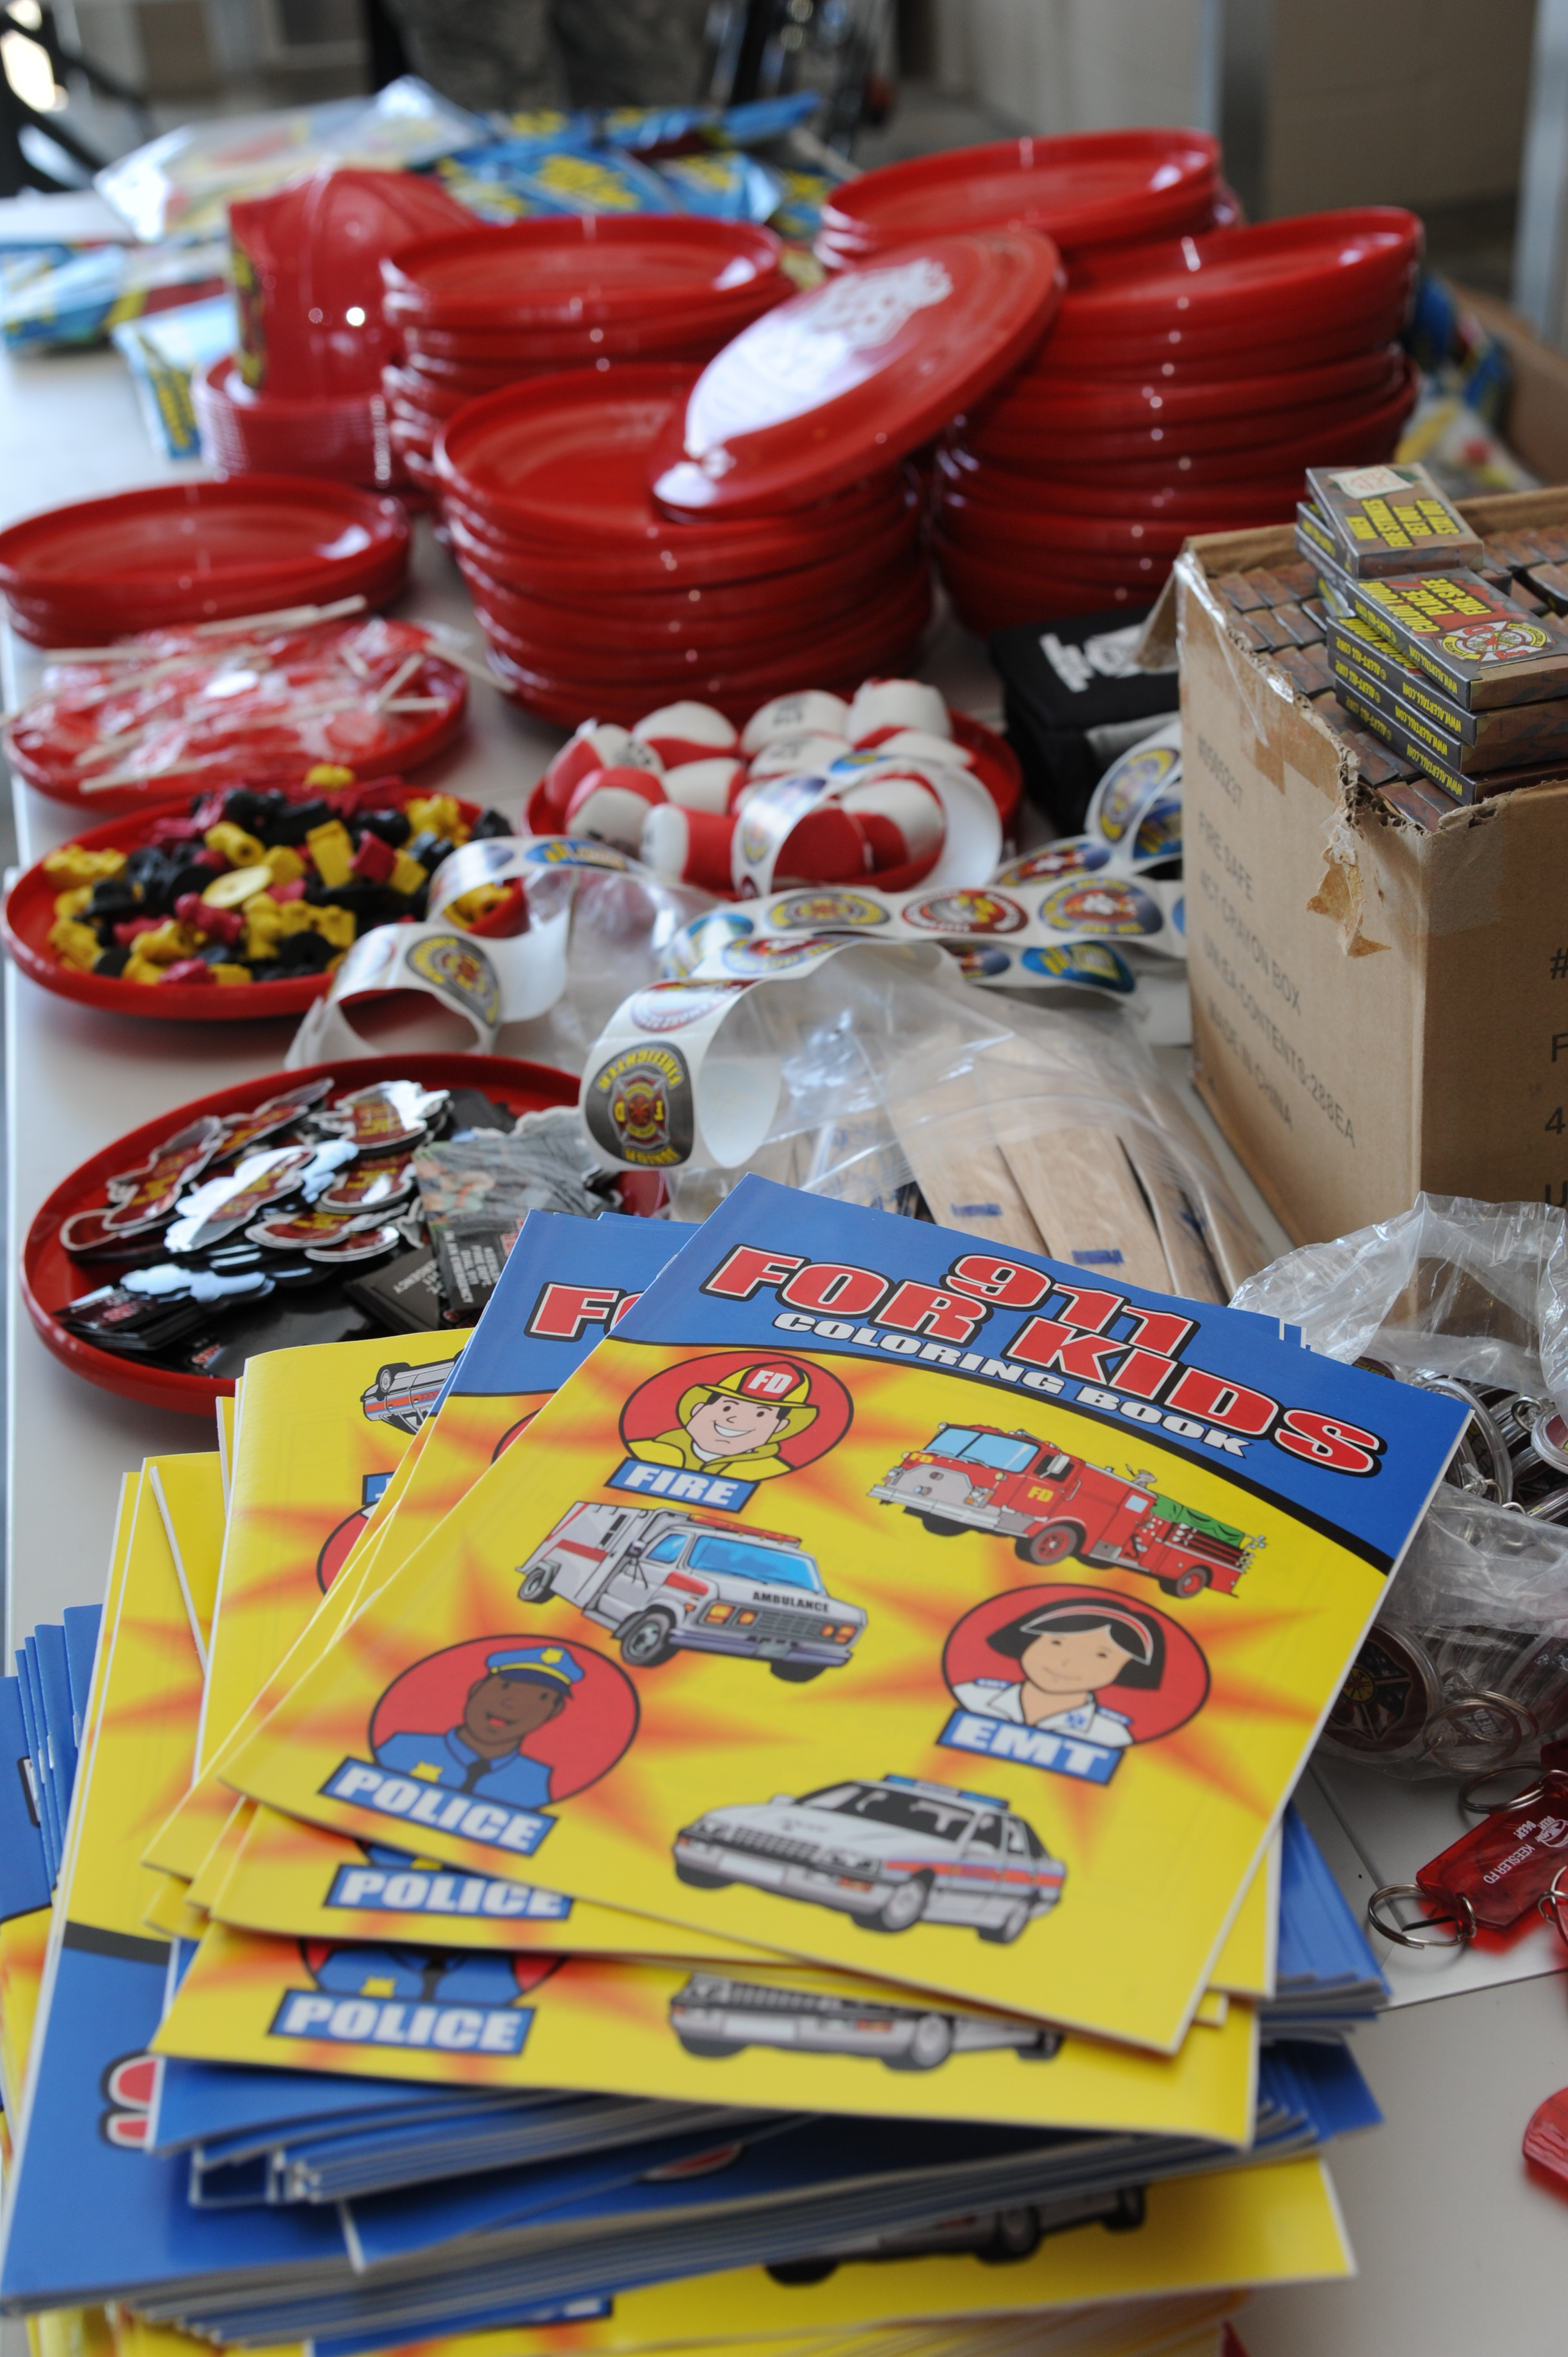 Fire prevention week ends with open house